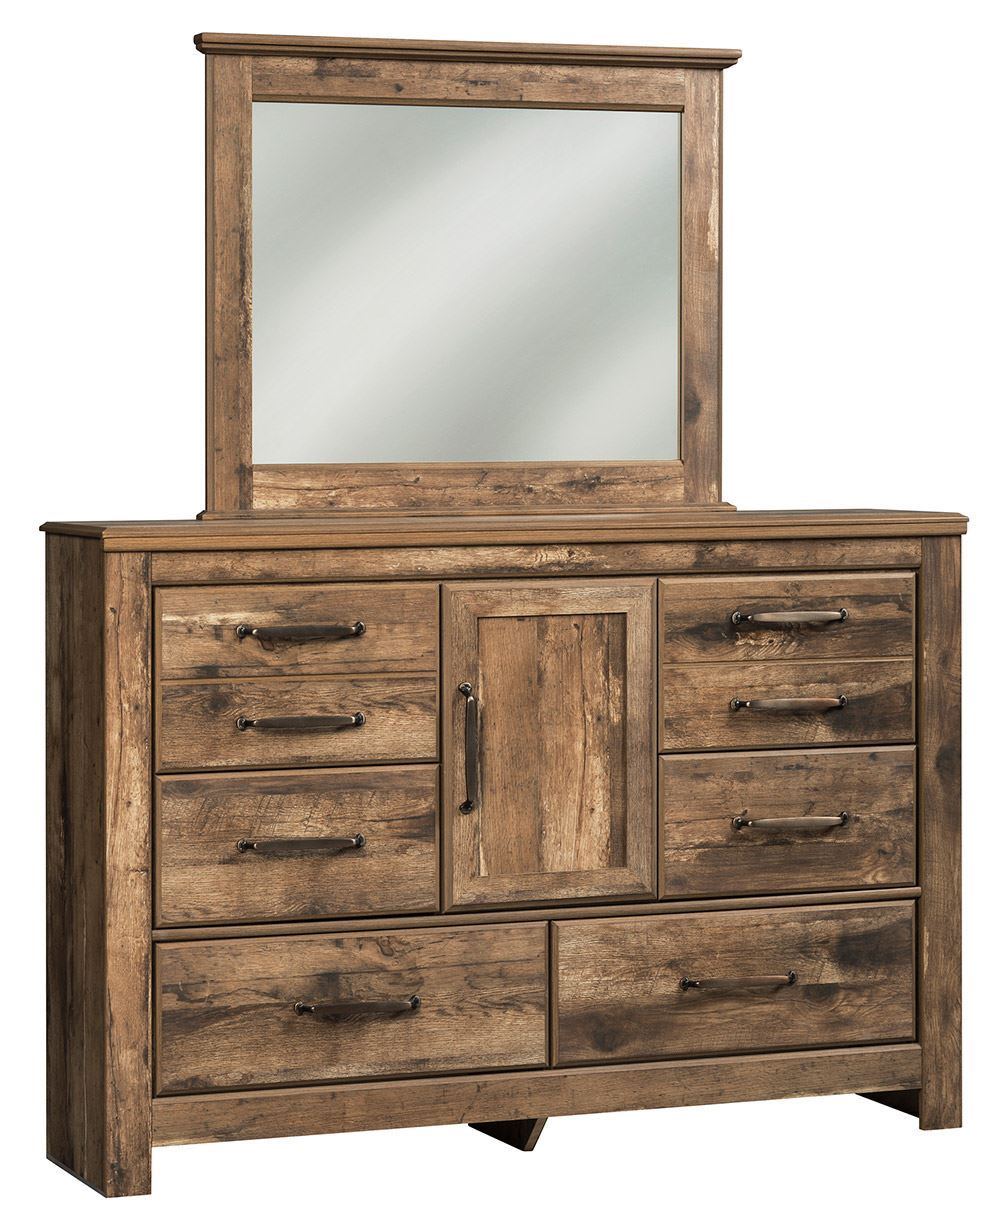 Picture of Blaneville Dresser and Mirror Set